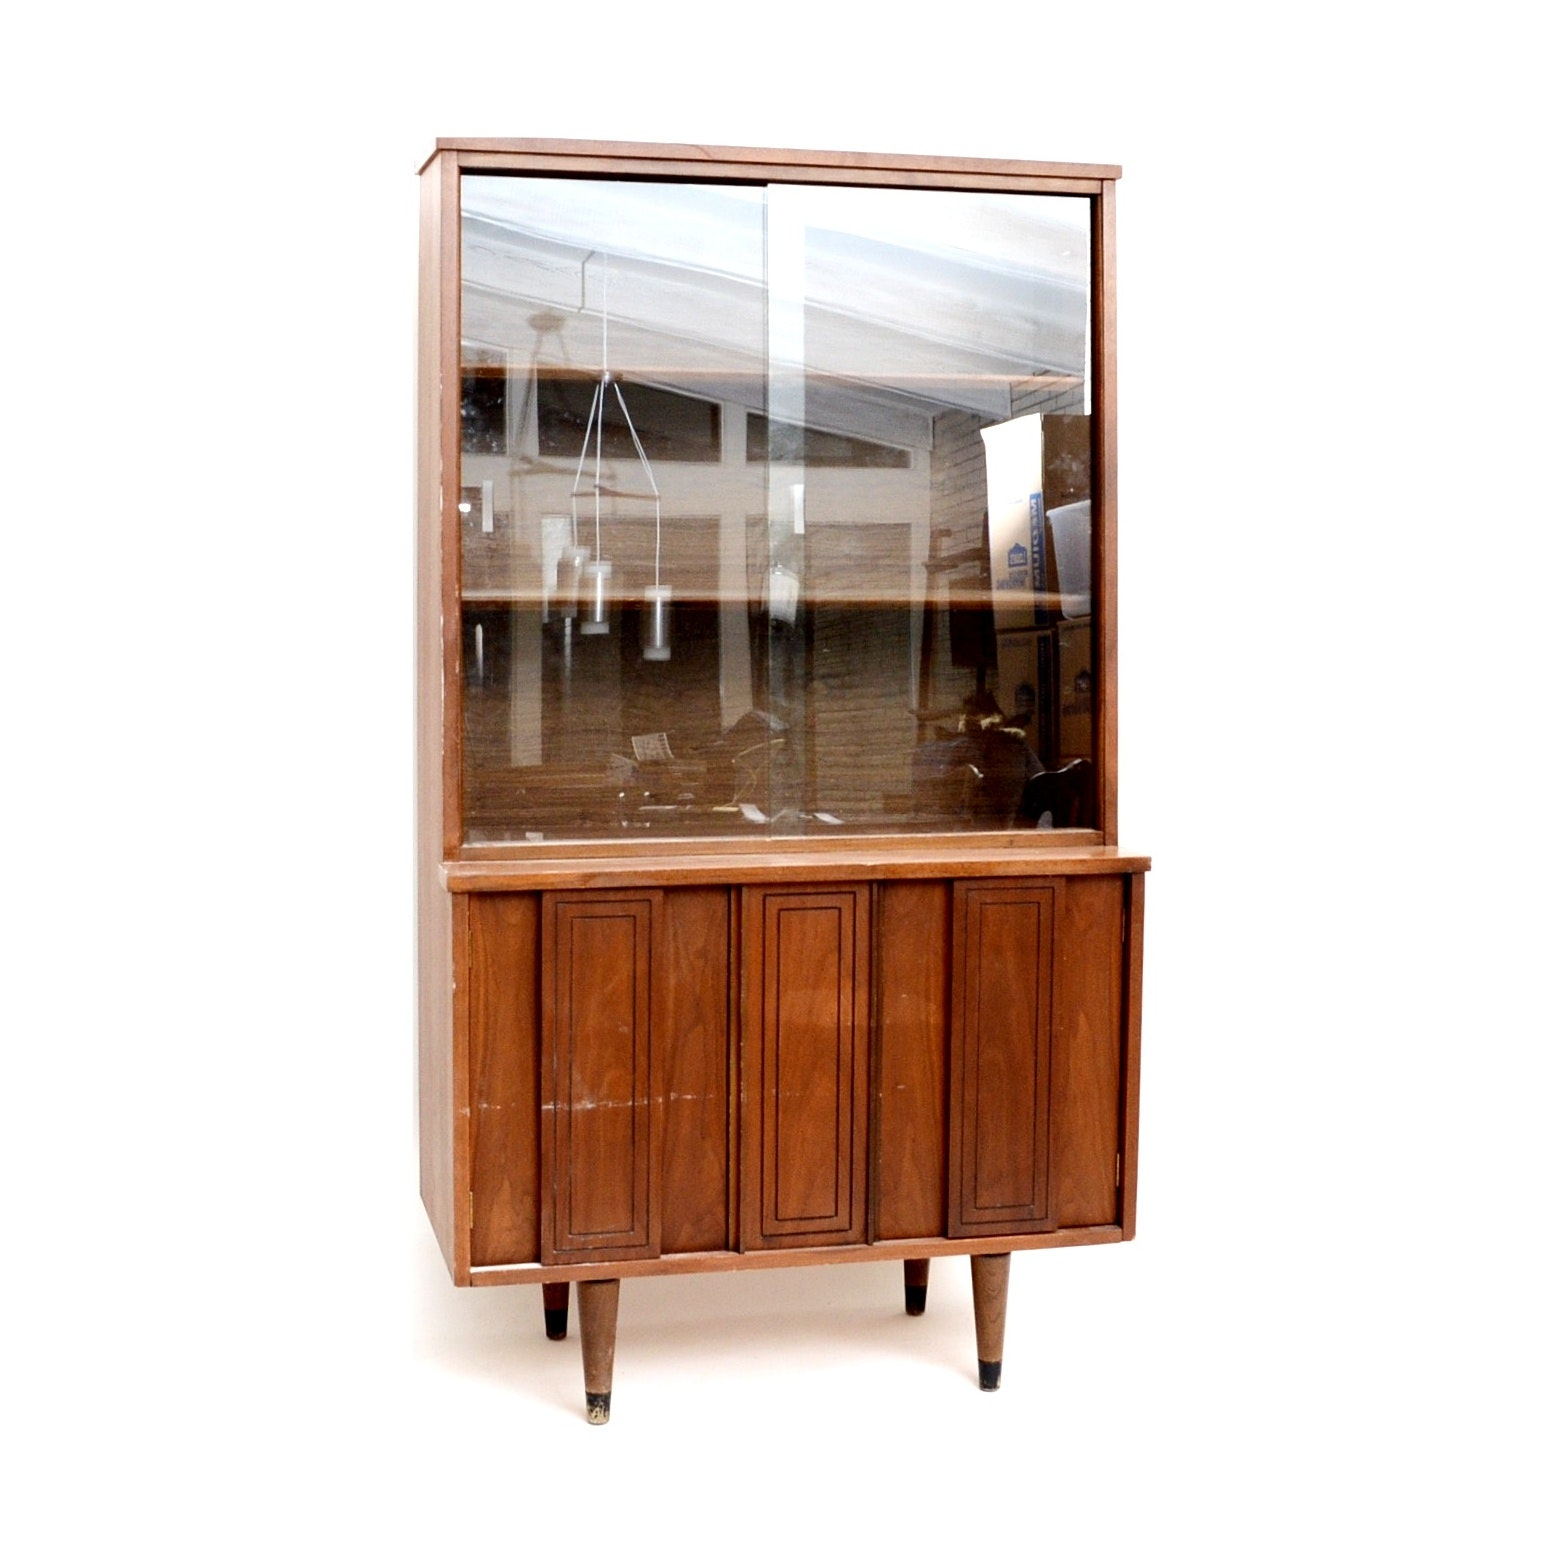 Super Vintage Mid Century Modern Sliding Glass Door China Hutch : EBTH ES18